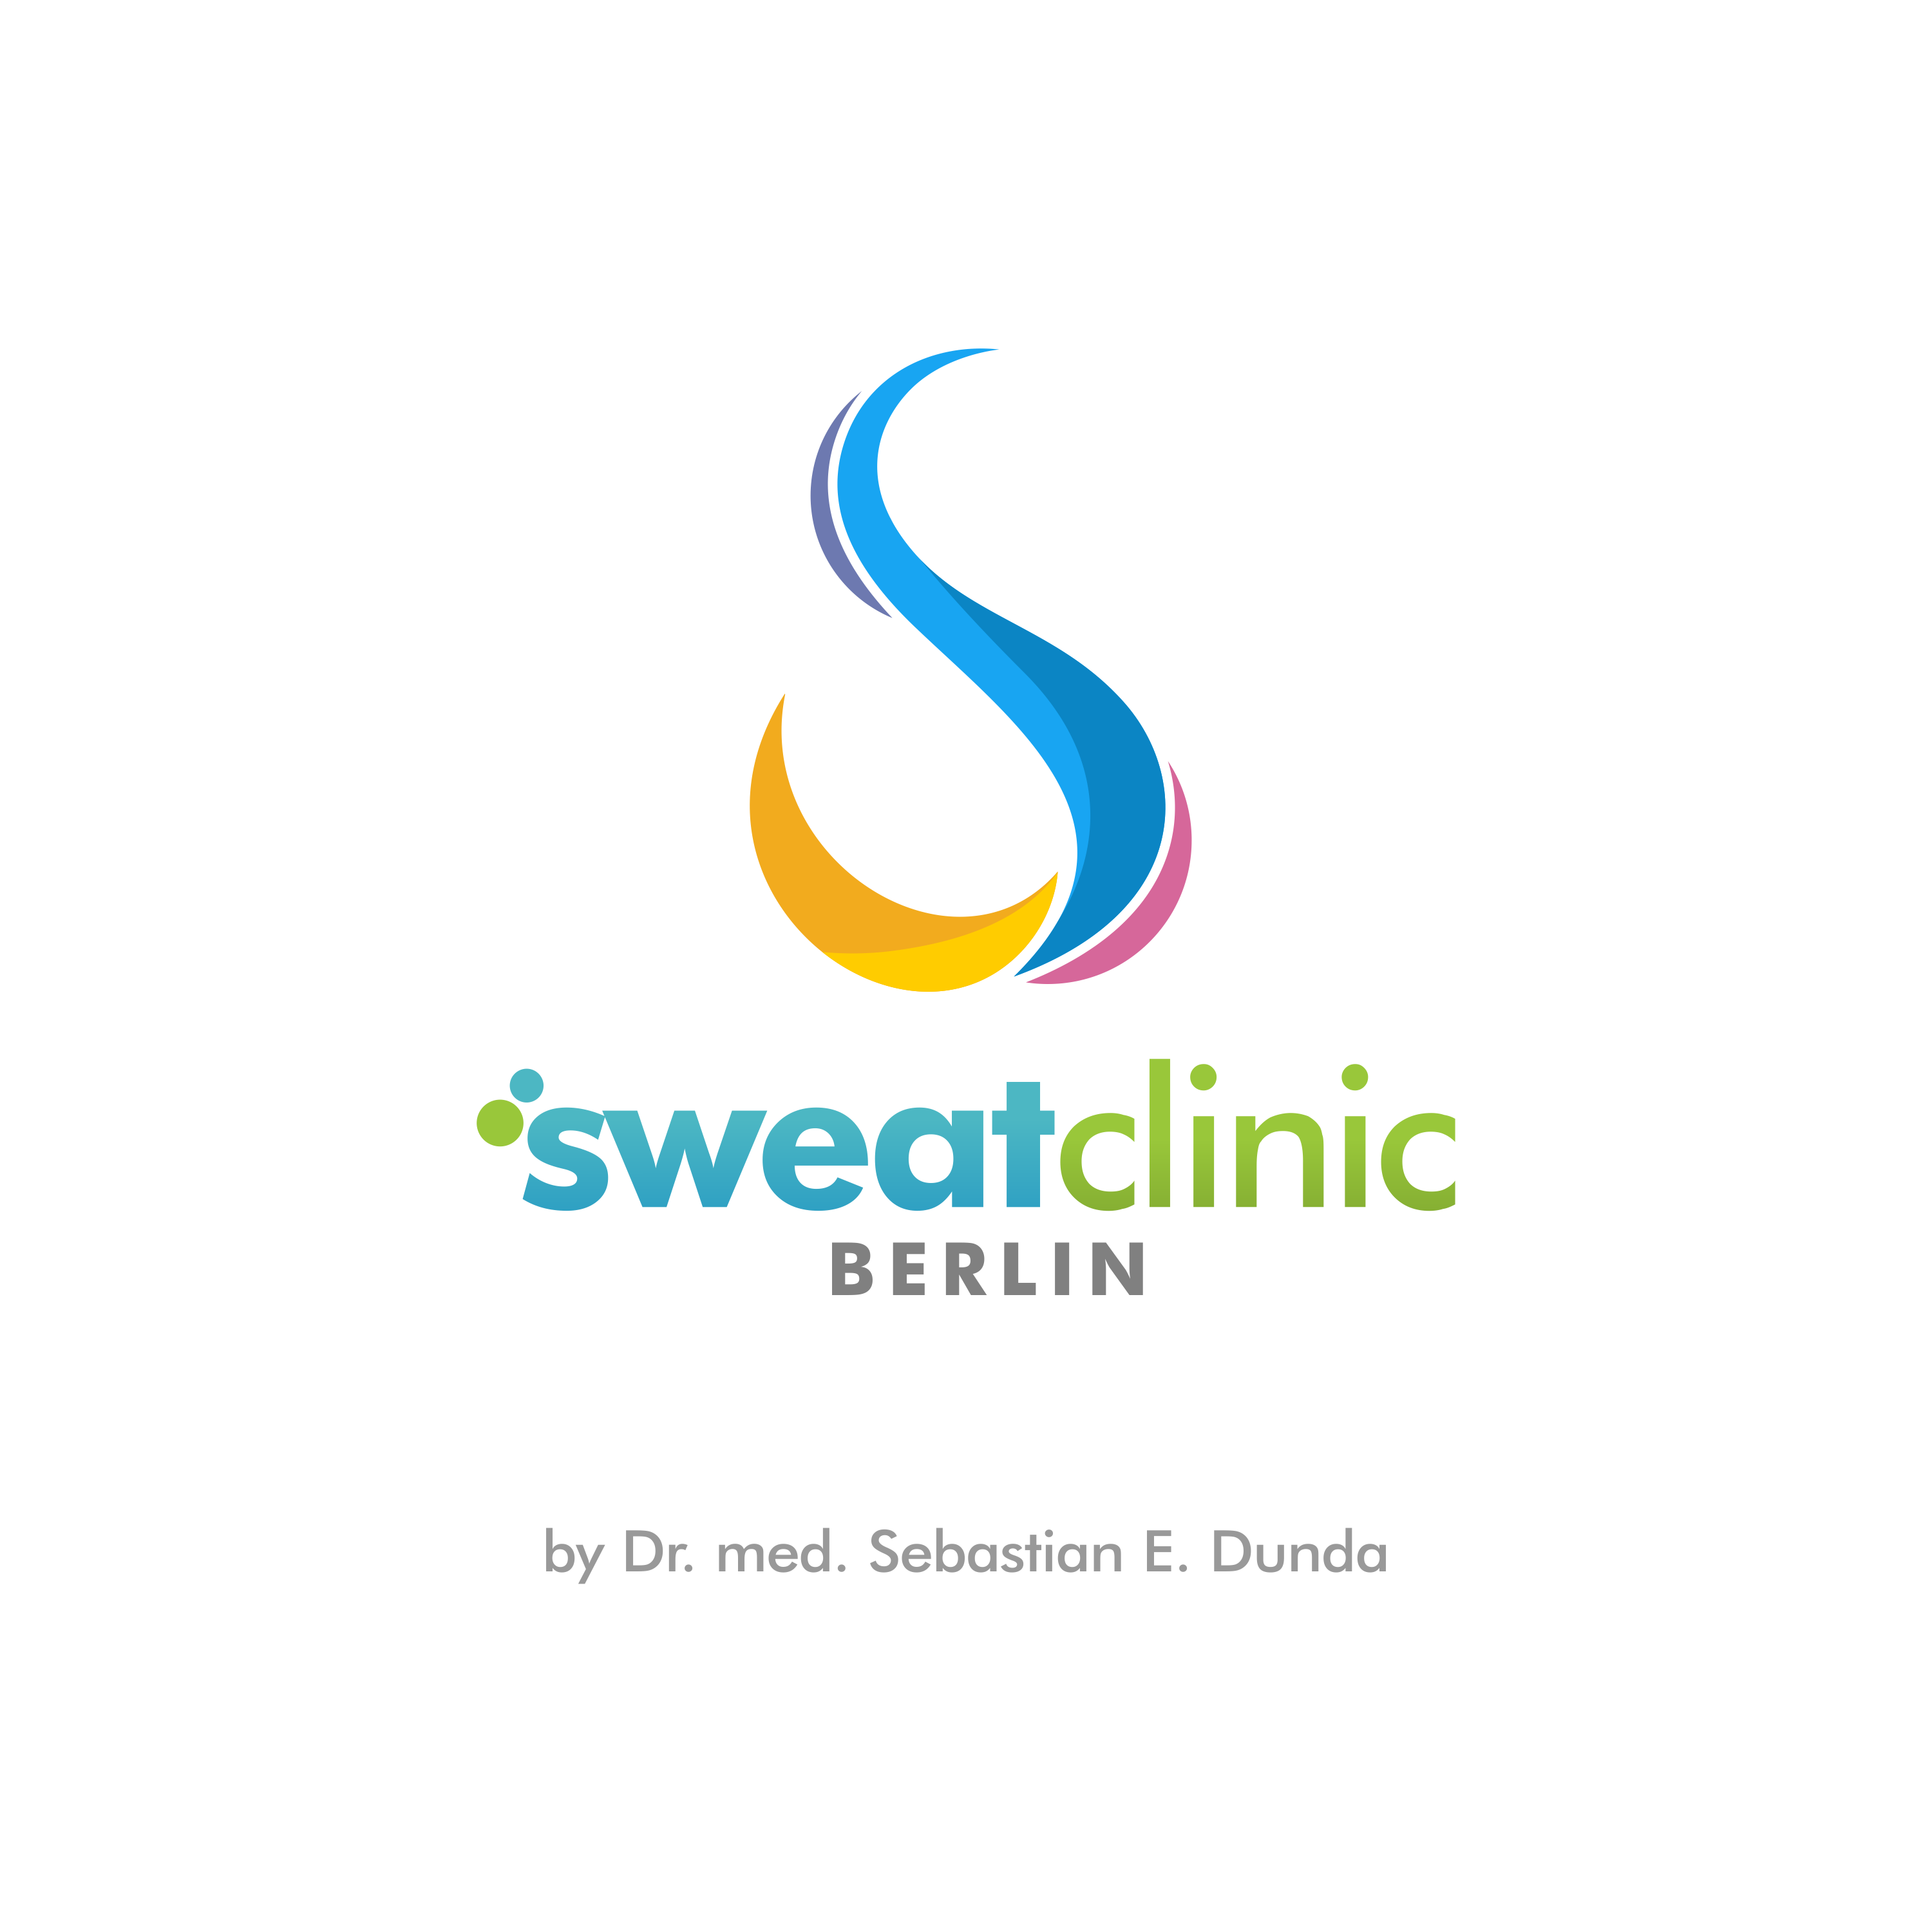 creative and colorful logo needed for treatment against sweating !